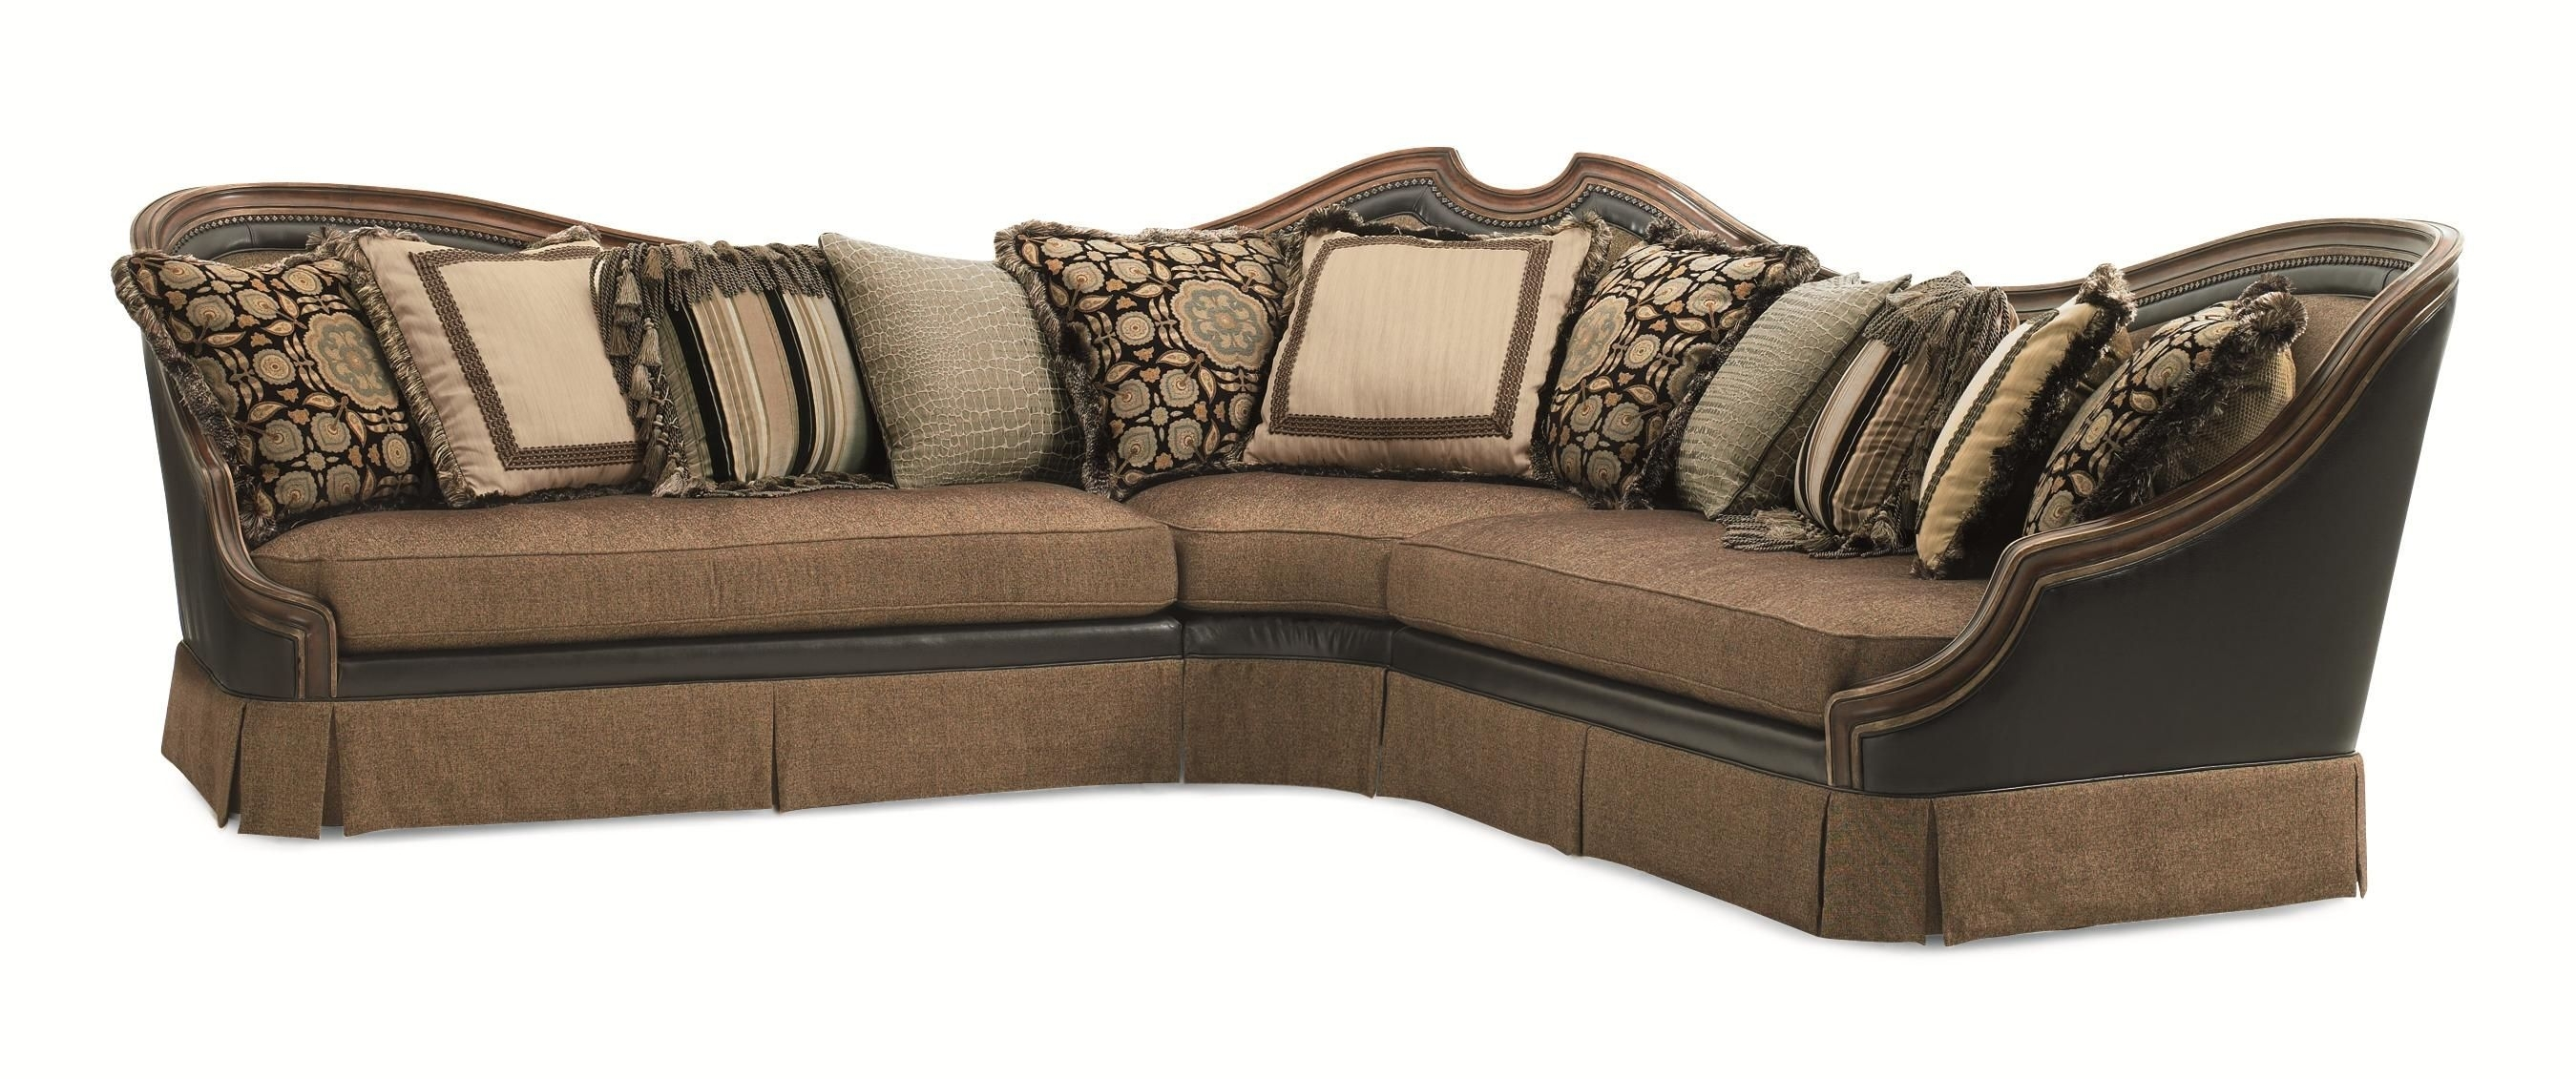 sofa mart indianapolis inexpensive mid century modern 10 collection of nebraska furniture sectional sofas